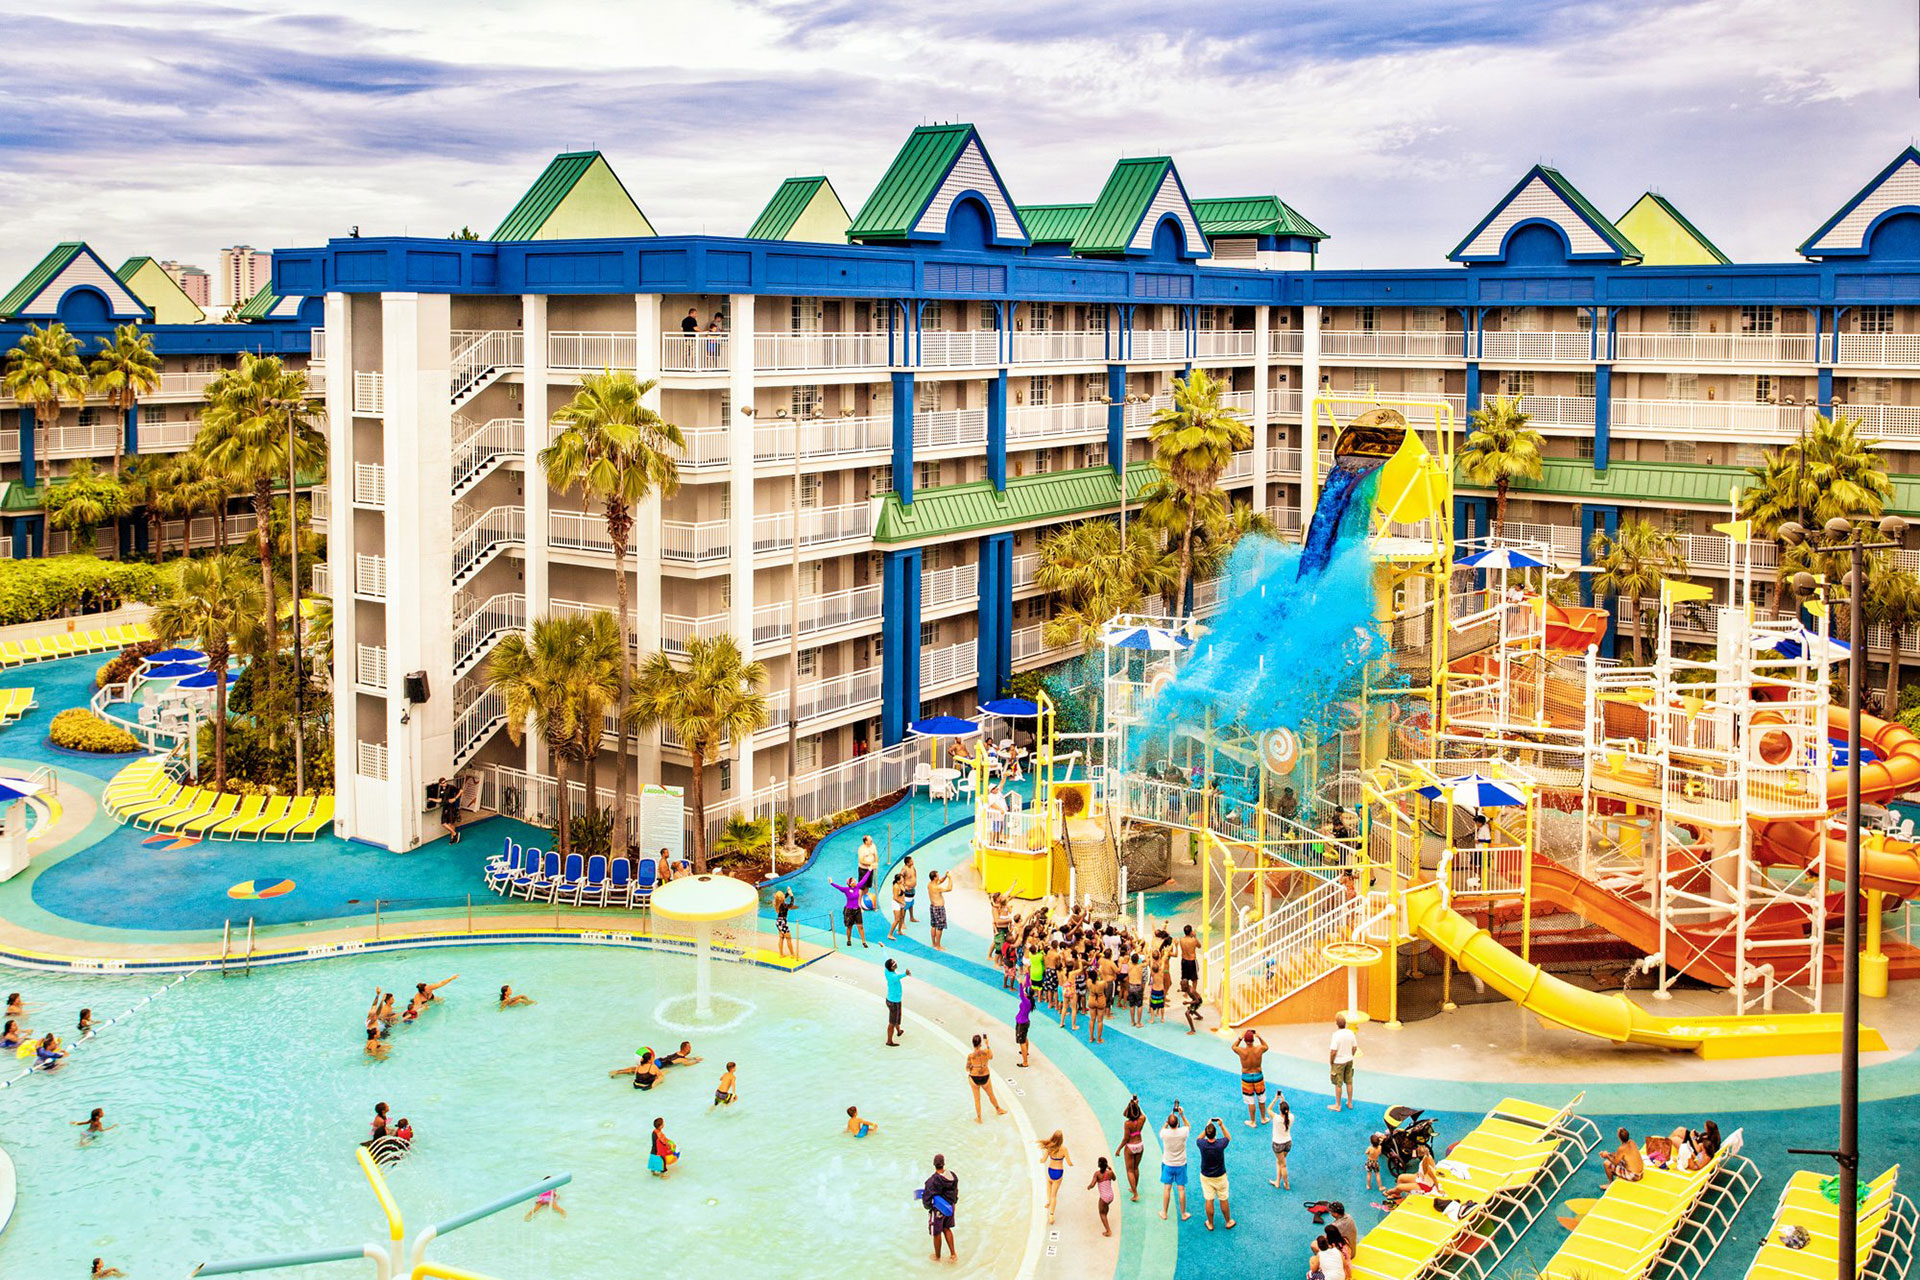 Aerial View of Holiday Inn Resort Orlando Suites – Waterpark; Courtesy of Holiday Inn Resort Orlando Suites – Waterpark